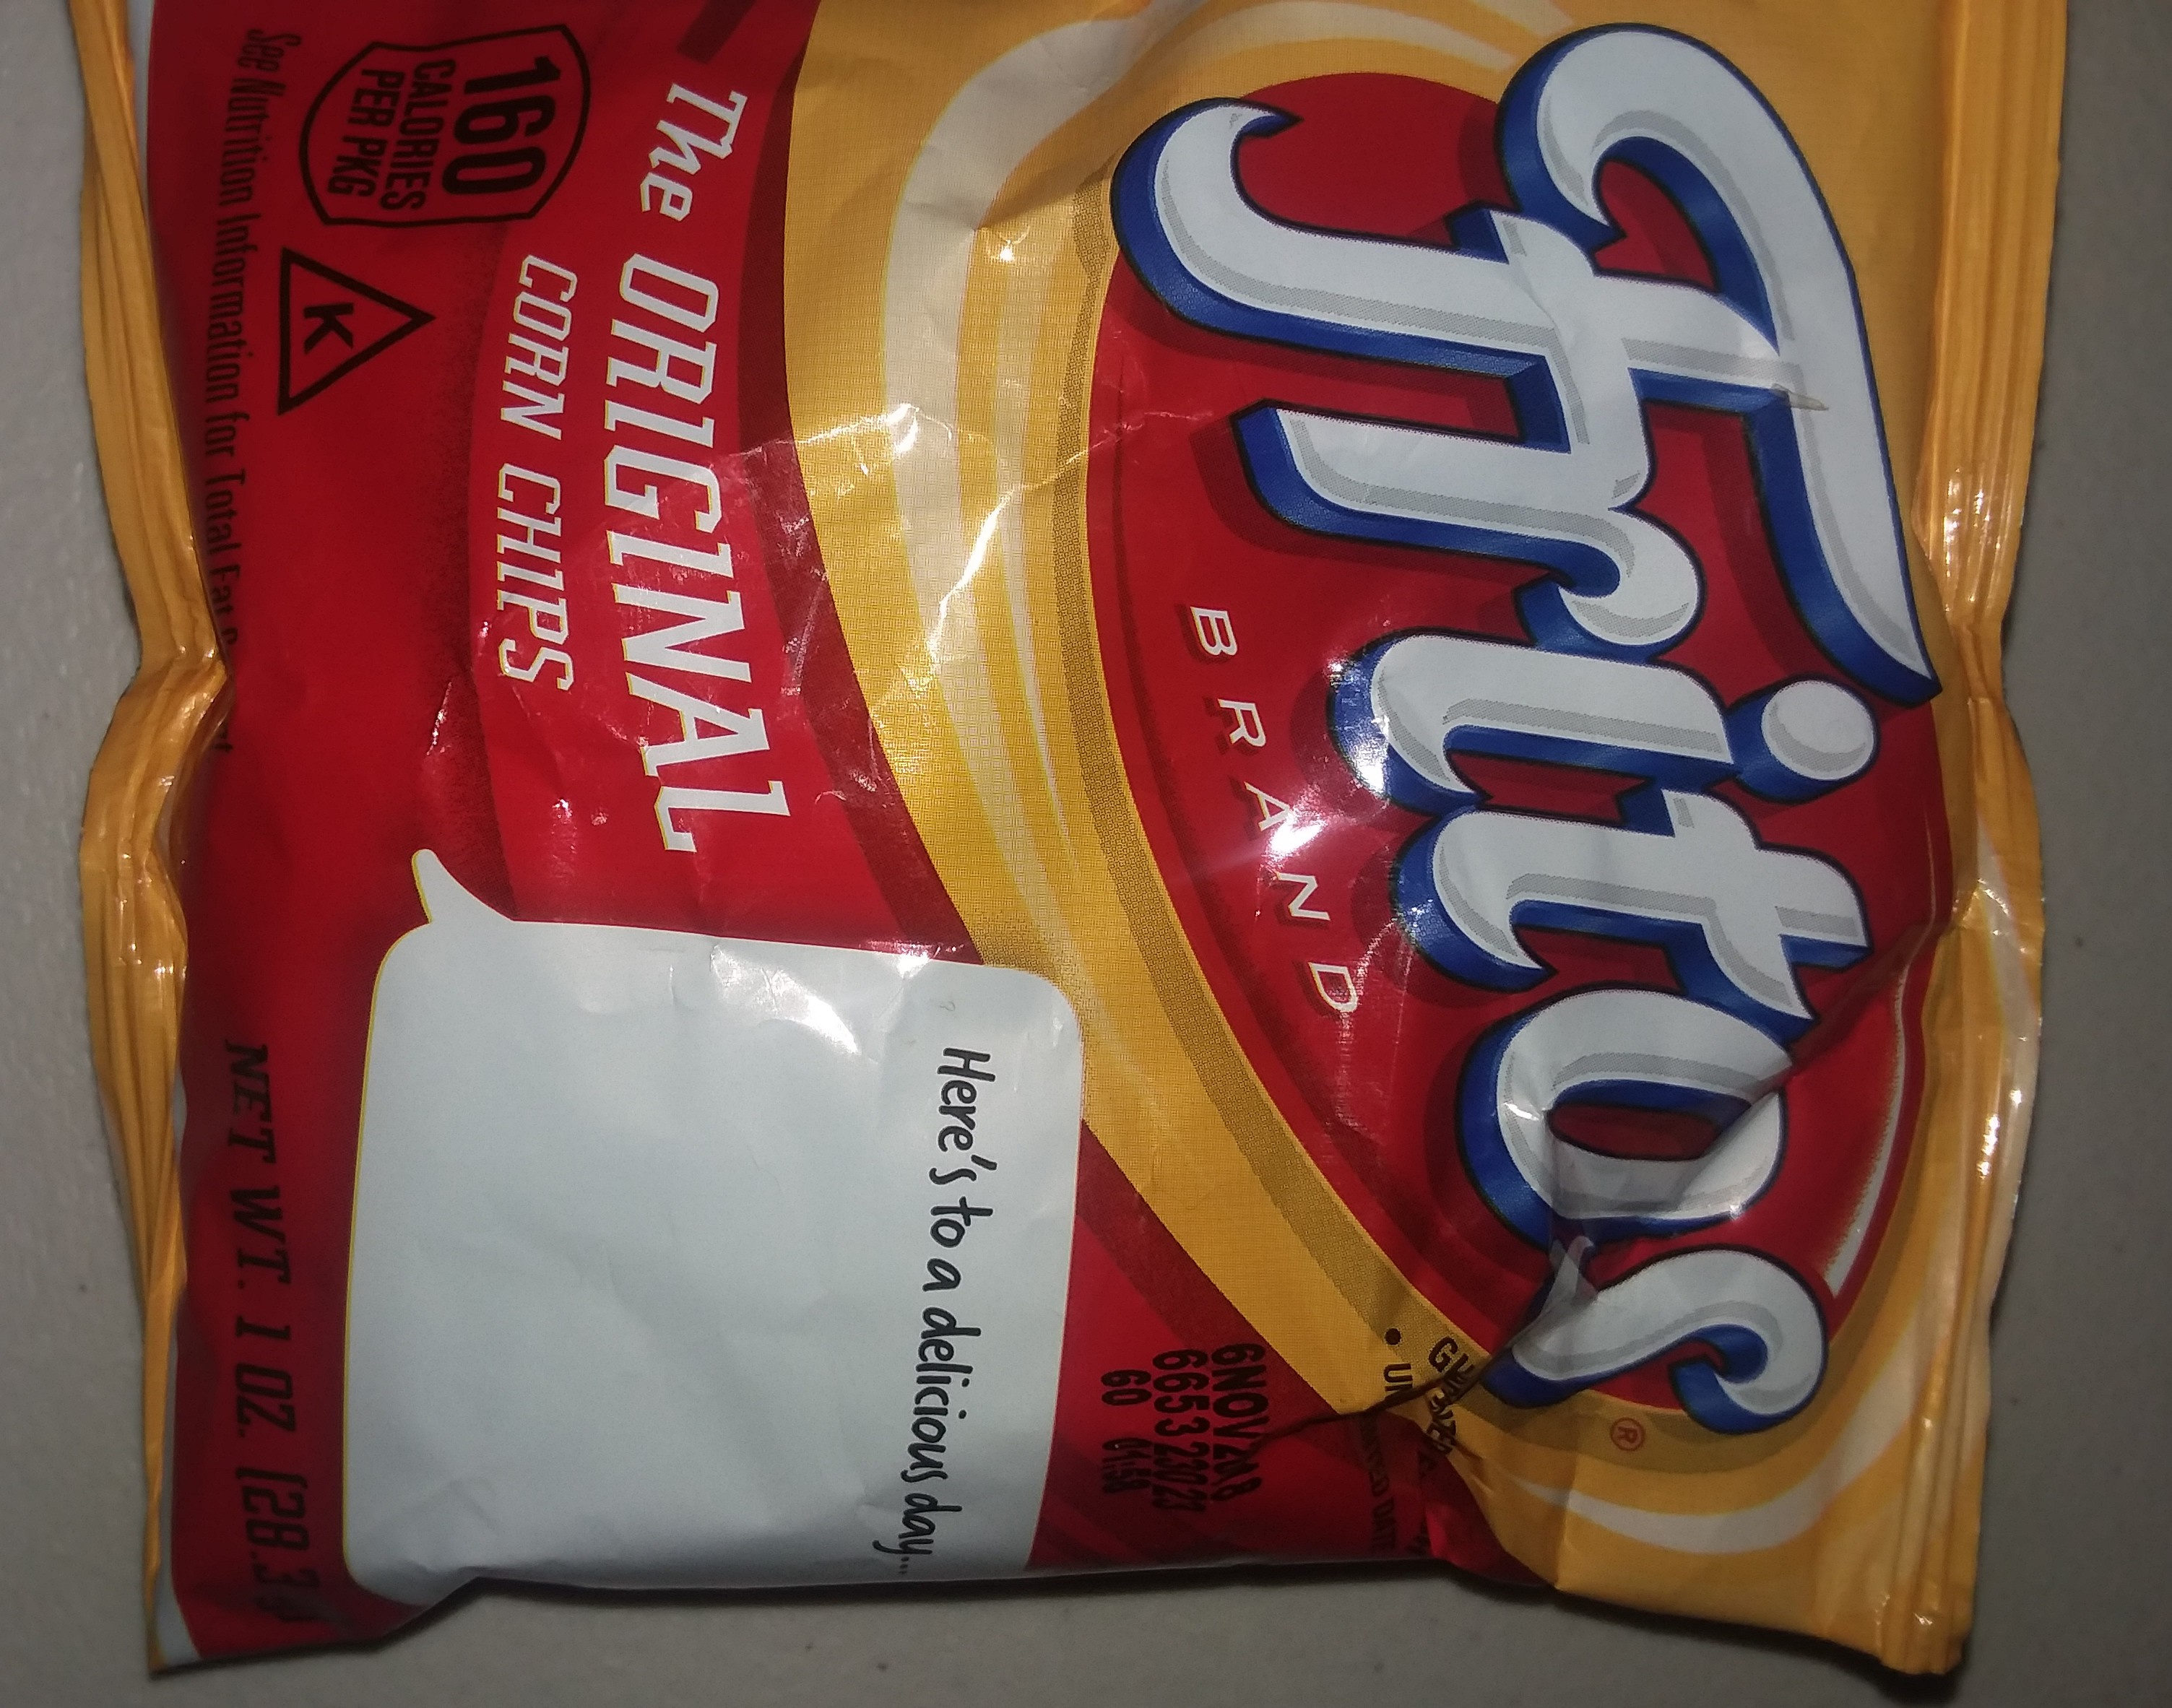 Fritos Original Corn Chips 1 Ounce Plastic Bag - Product - en